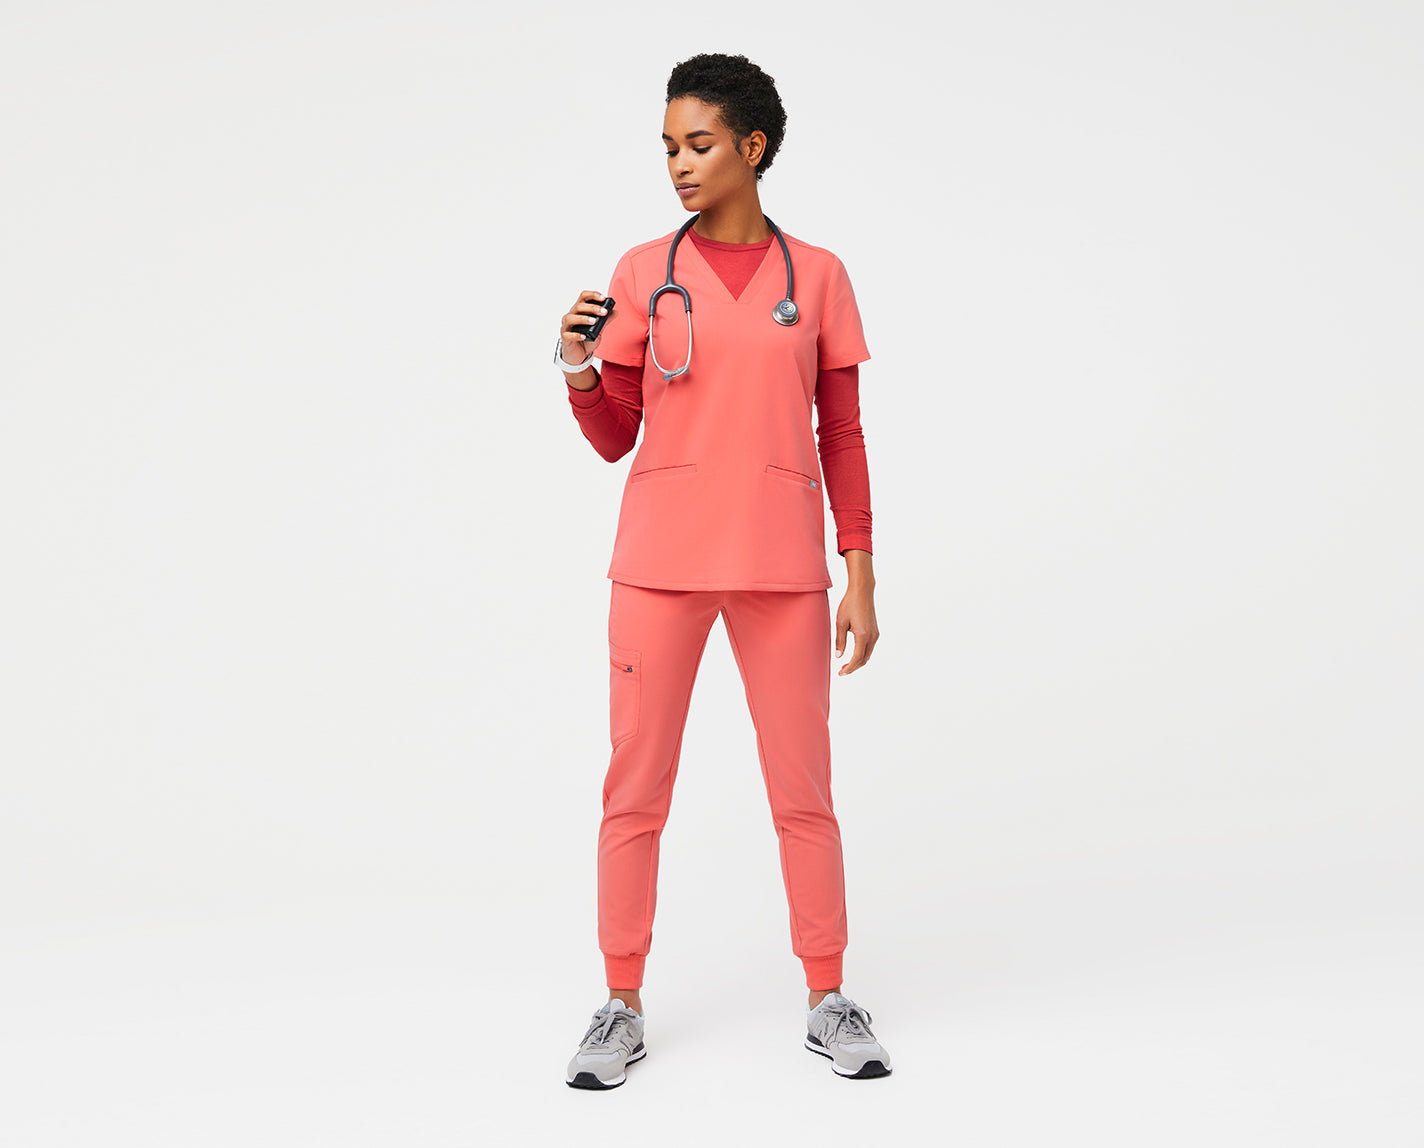 This underscrub stays cool under pressure — just like you. With a slim fit, our proprietary FIONdry moisture-wicking technology and perforated ventilation details, Salta takes your shifts to the next level.